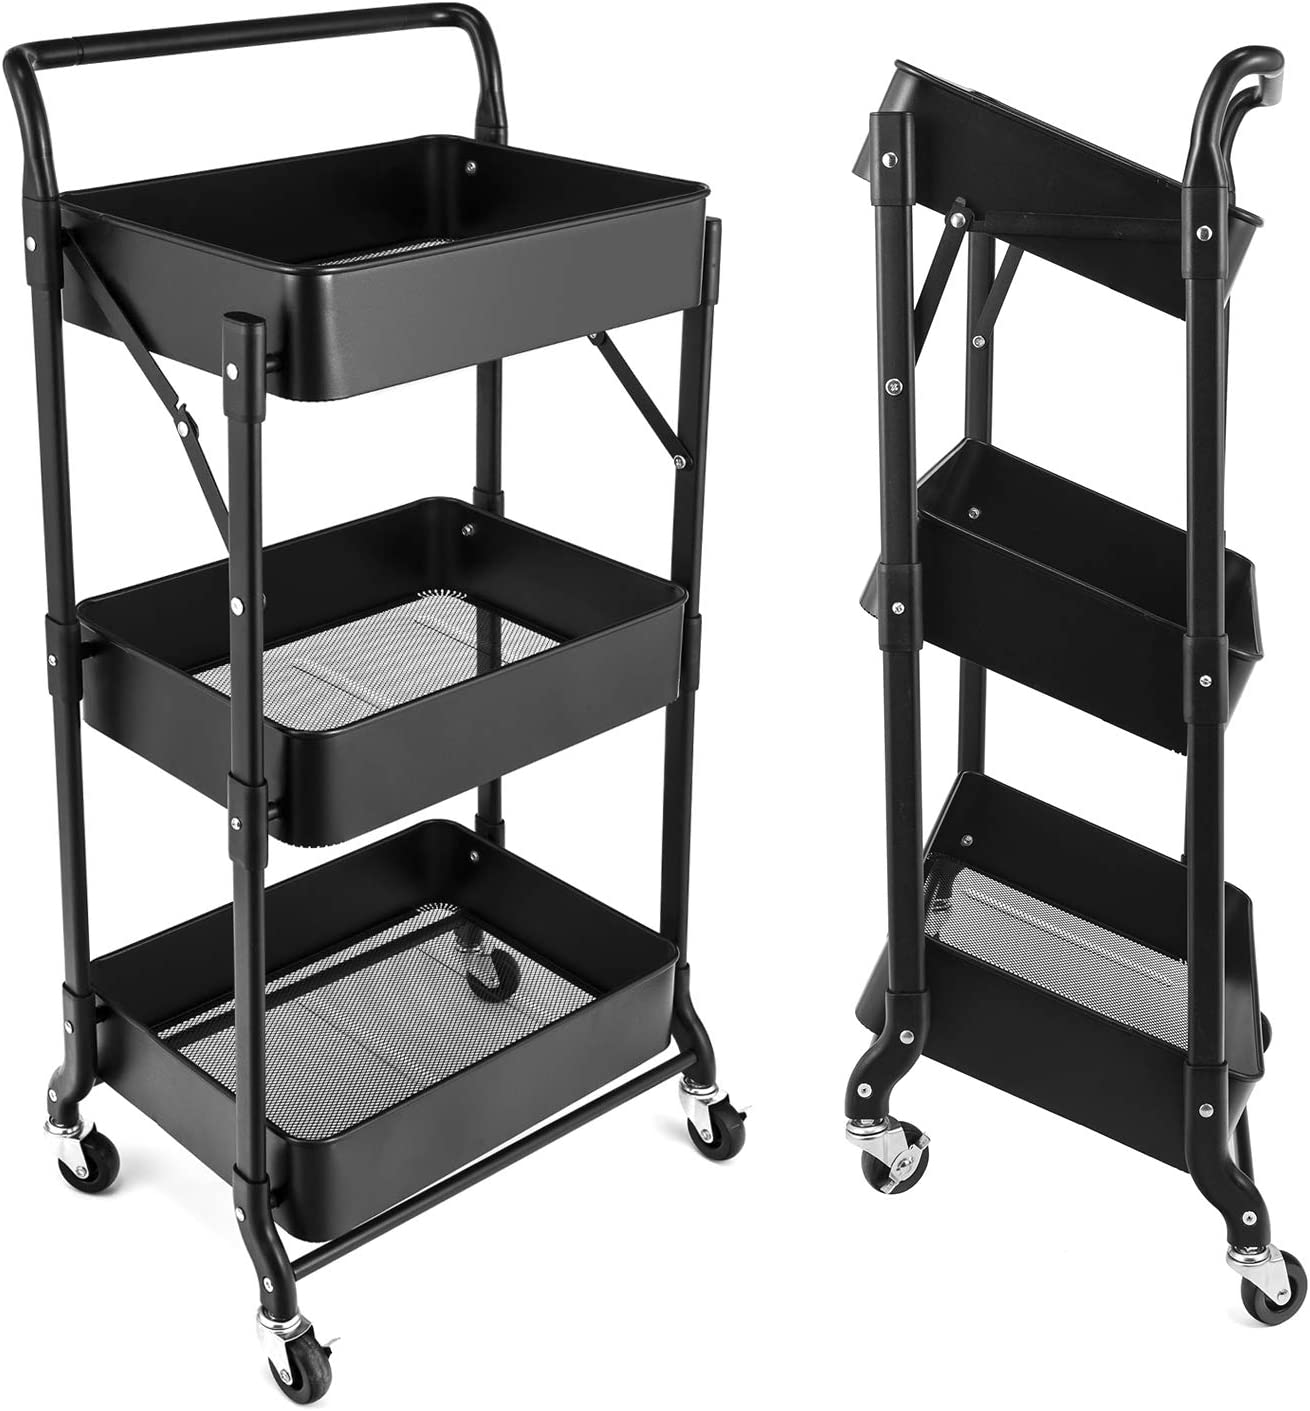 3-Tier Folding Rolling Cart Organizer, Utility Cart with Handle and Metal Storage Basket, Folding Storage Cart with Wheels for Kitchen/Bedroom/Living Room/Bathroom/Office, Black